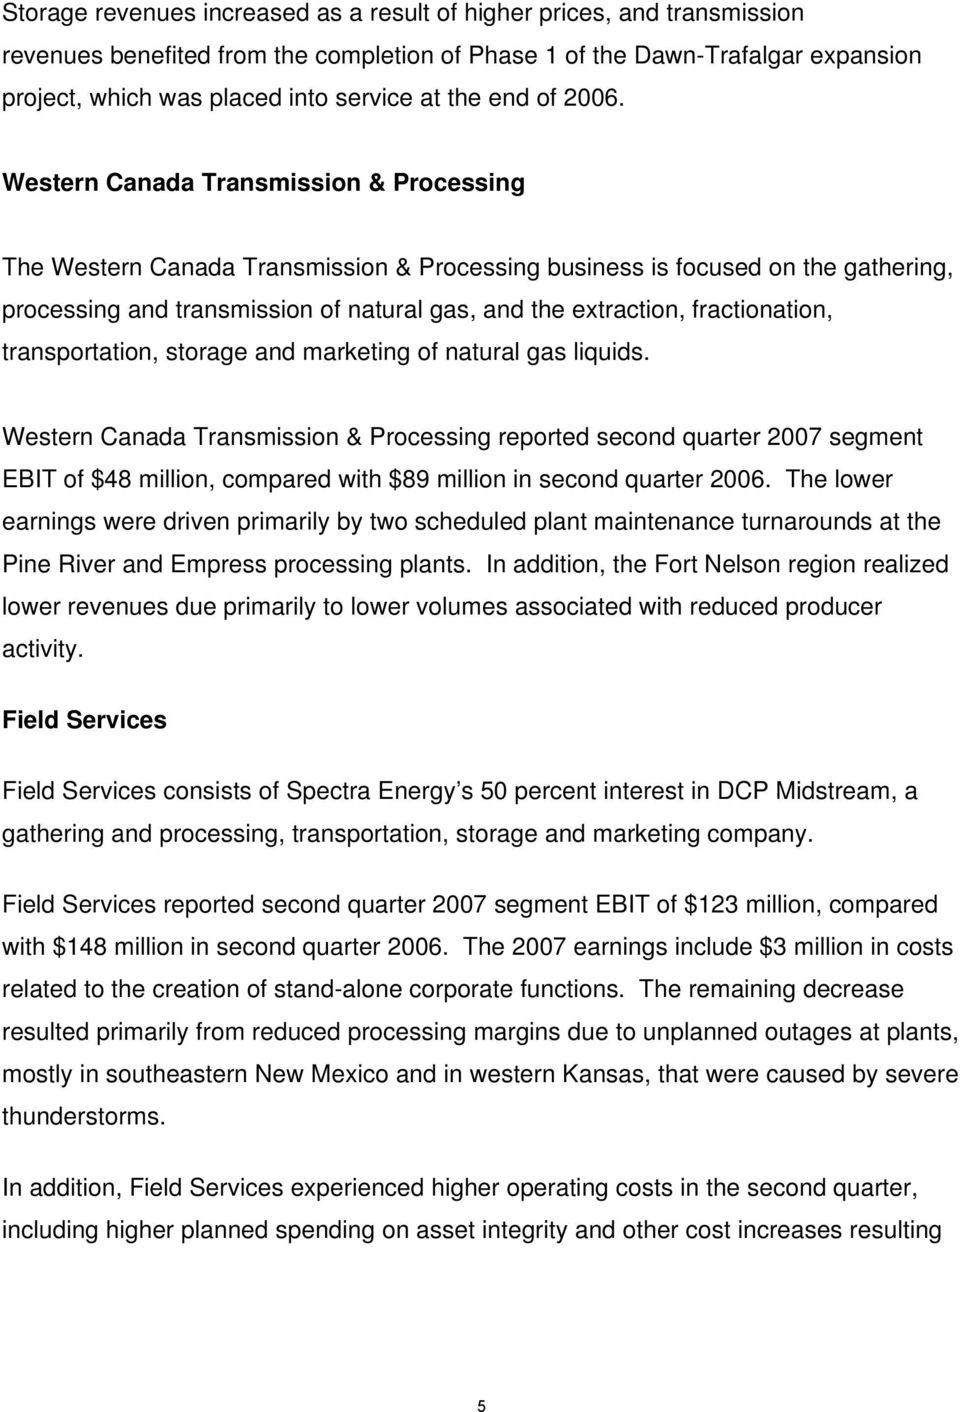 Western Canada Transmission & Processing The Western Canada Transmission & Processing business is focused on the gathering, processing and transmission of natural gas, and the extraction,